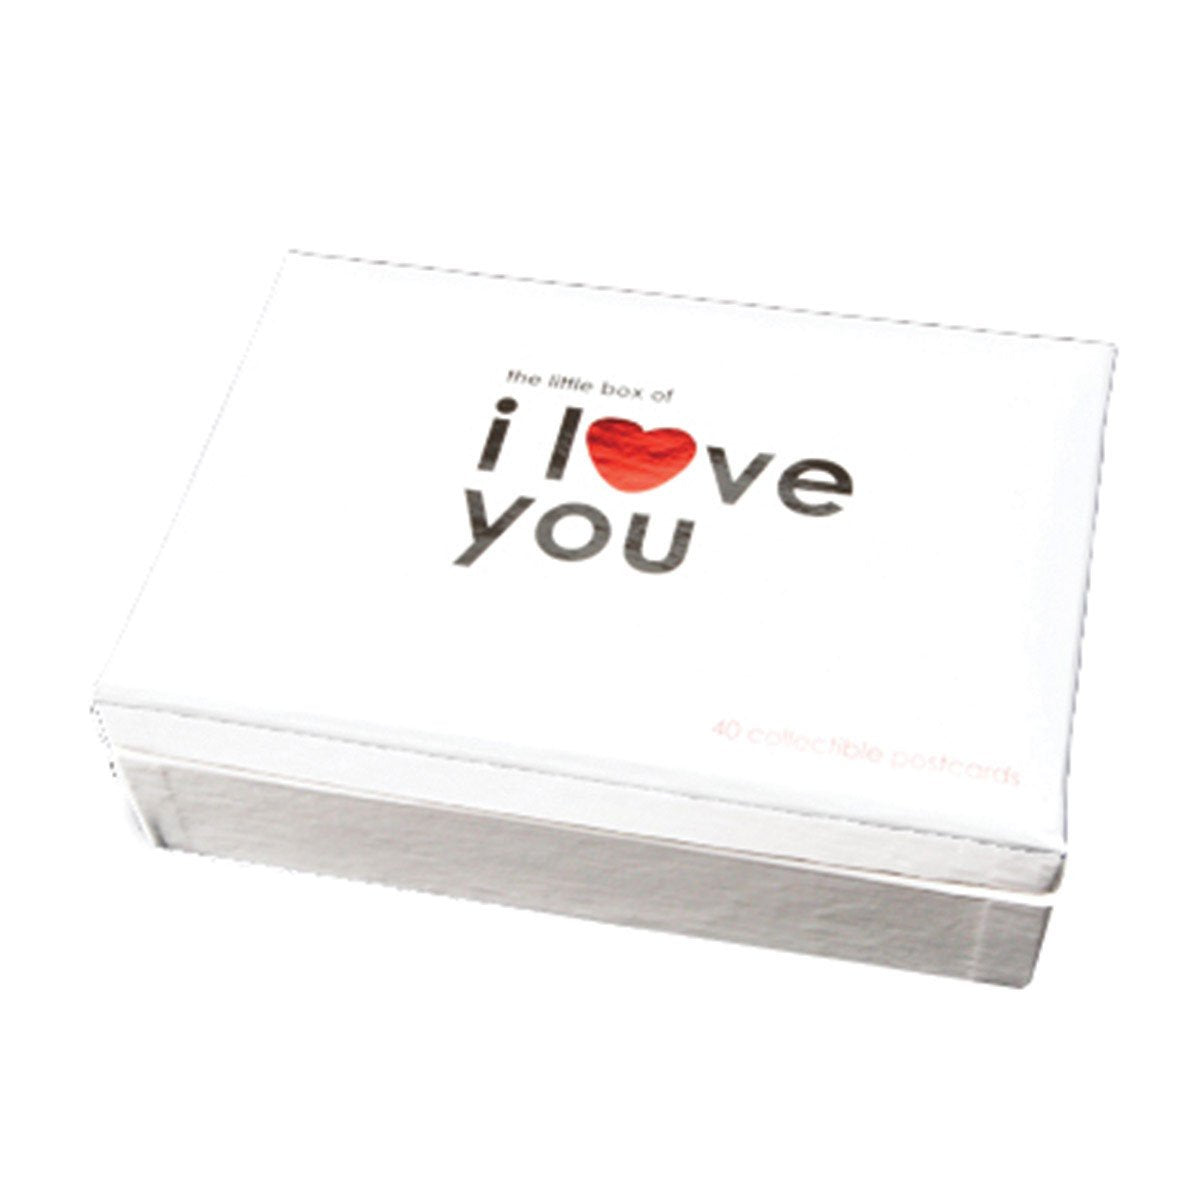 Little Box of I Love You